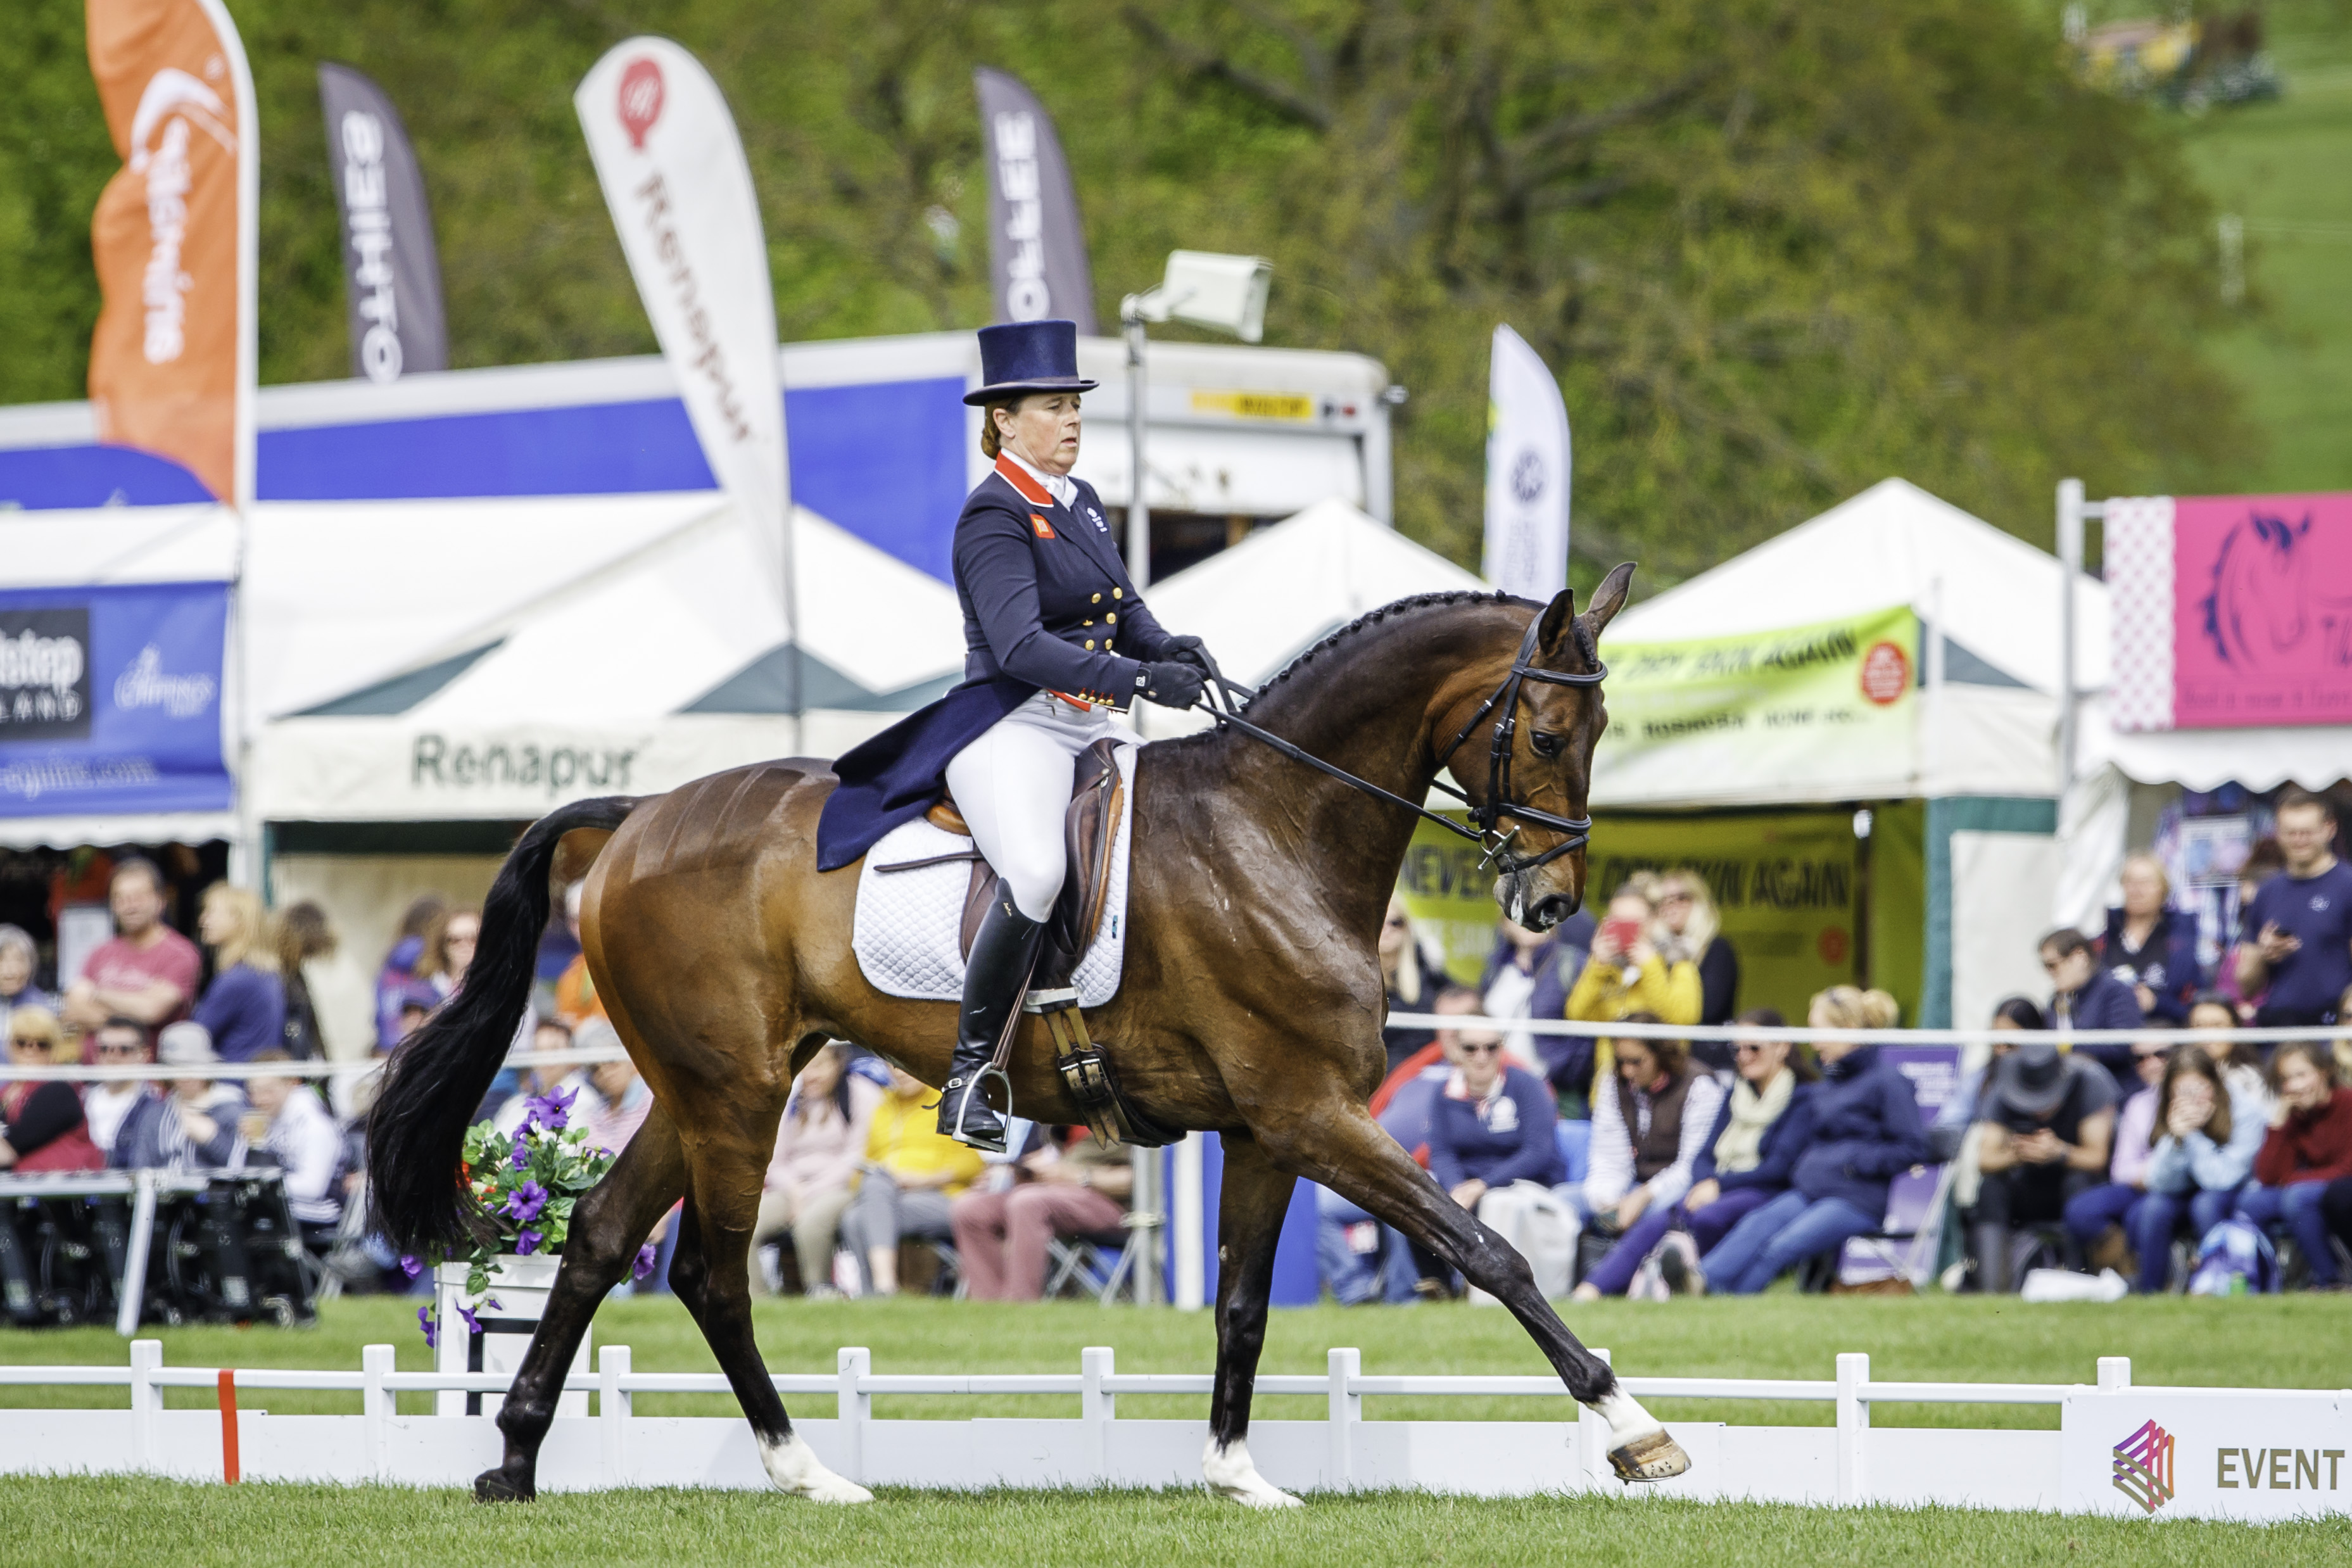 British riders triumph at Chatsworth